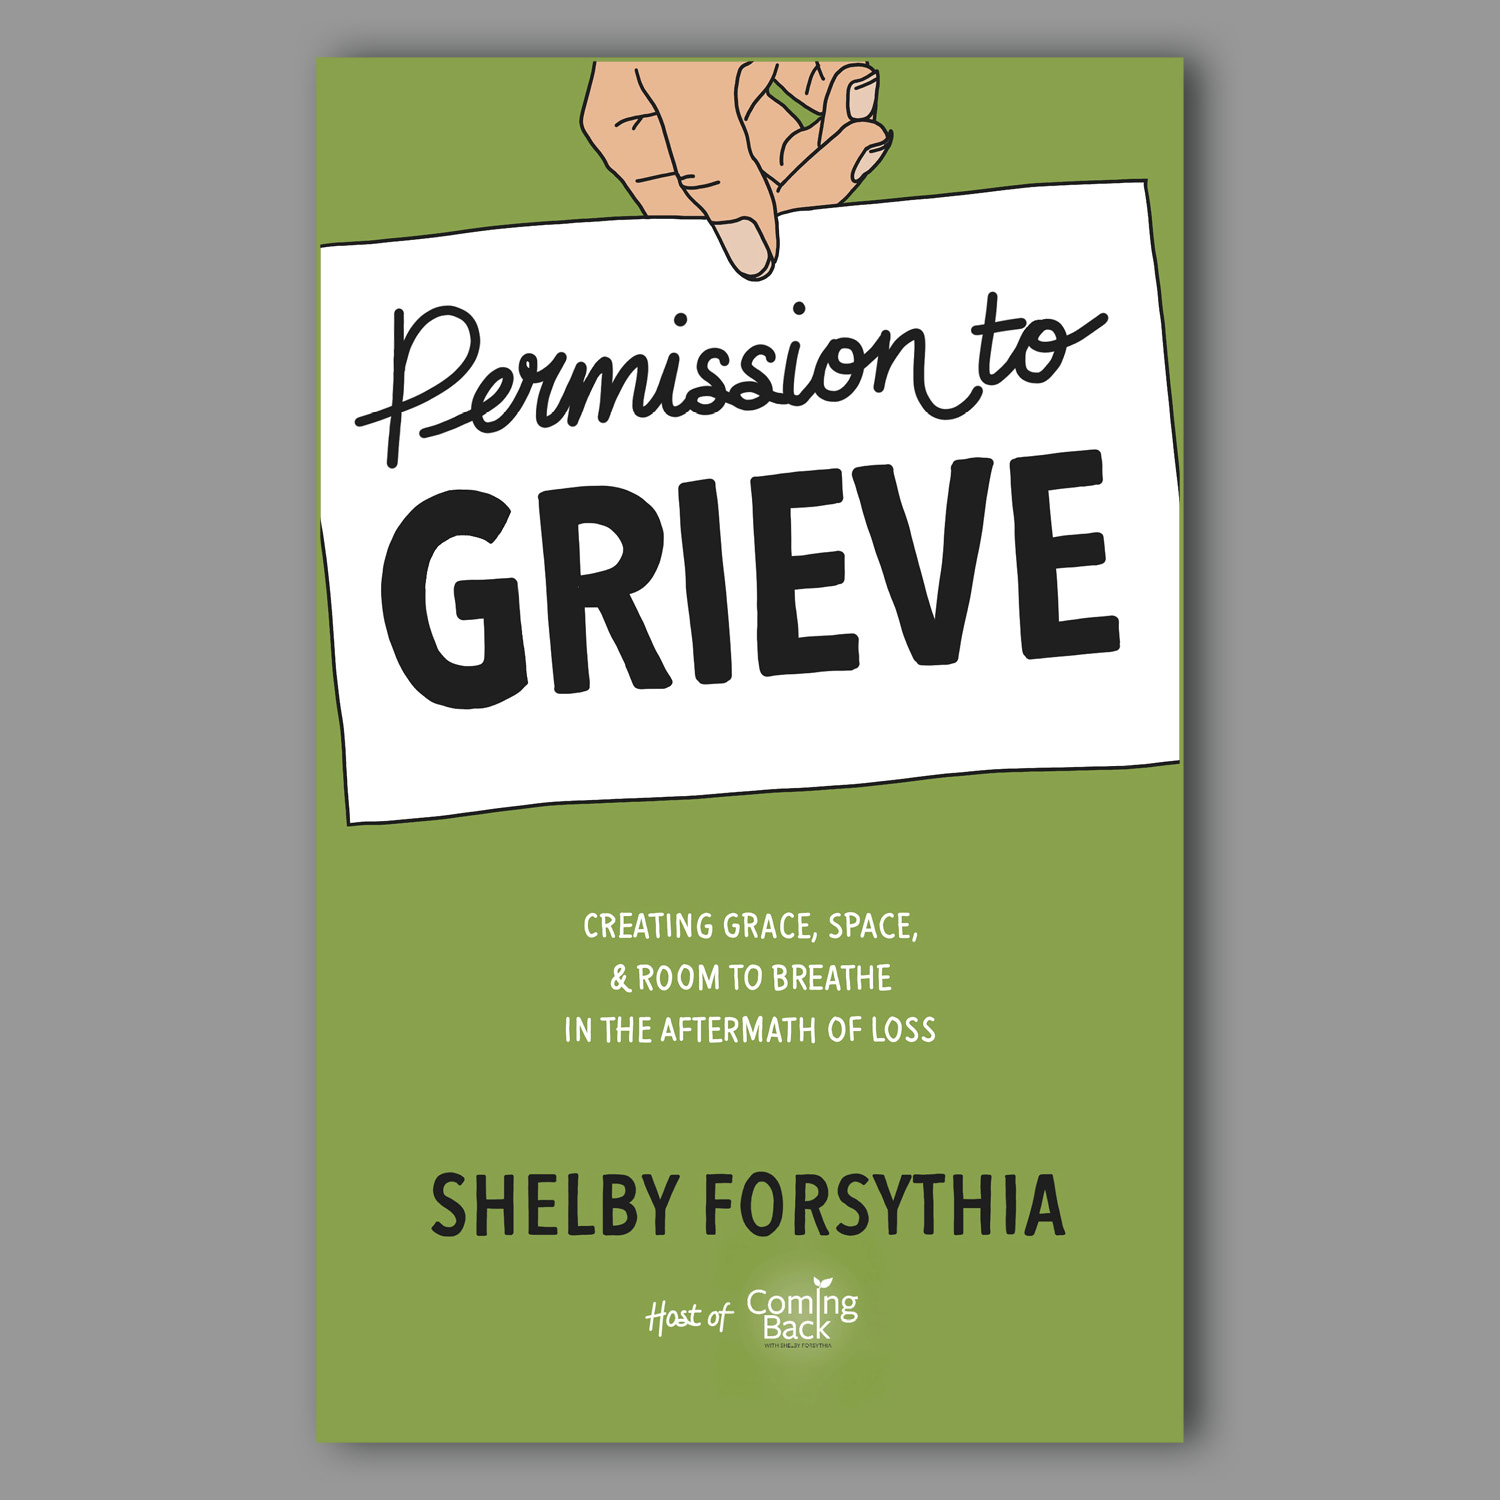 Permission to Grieve on Grey